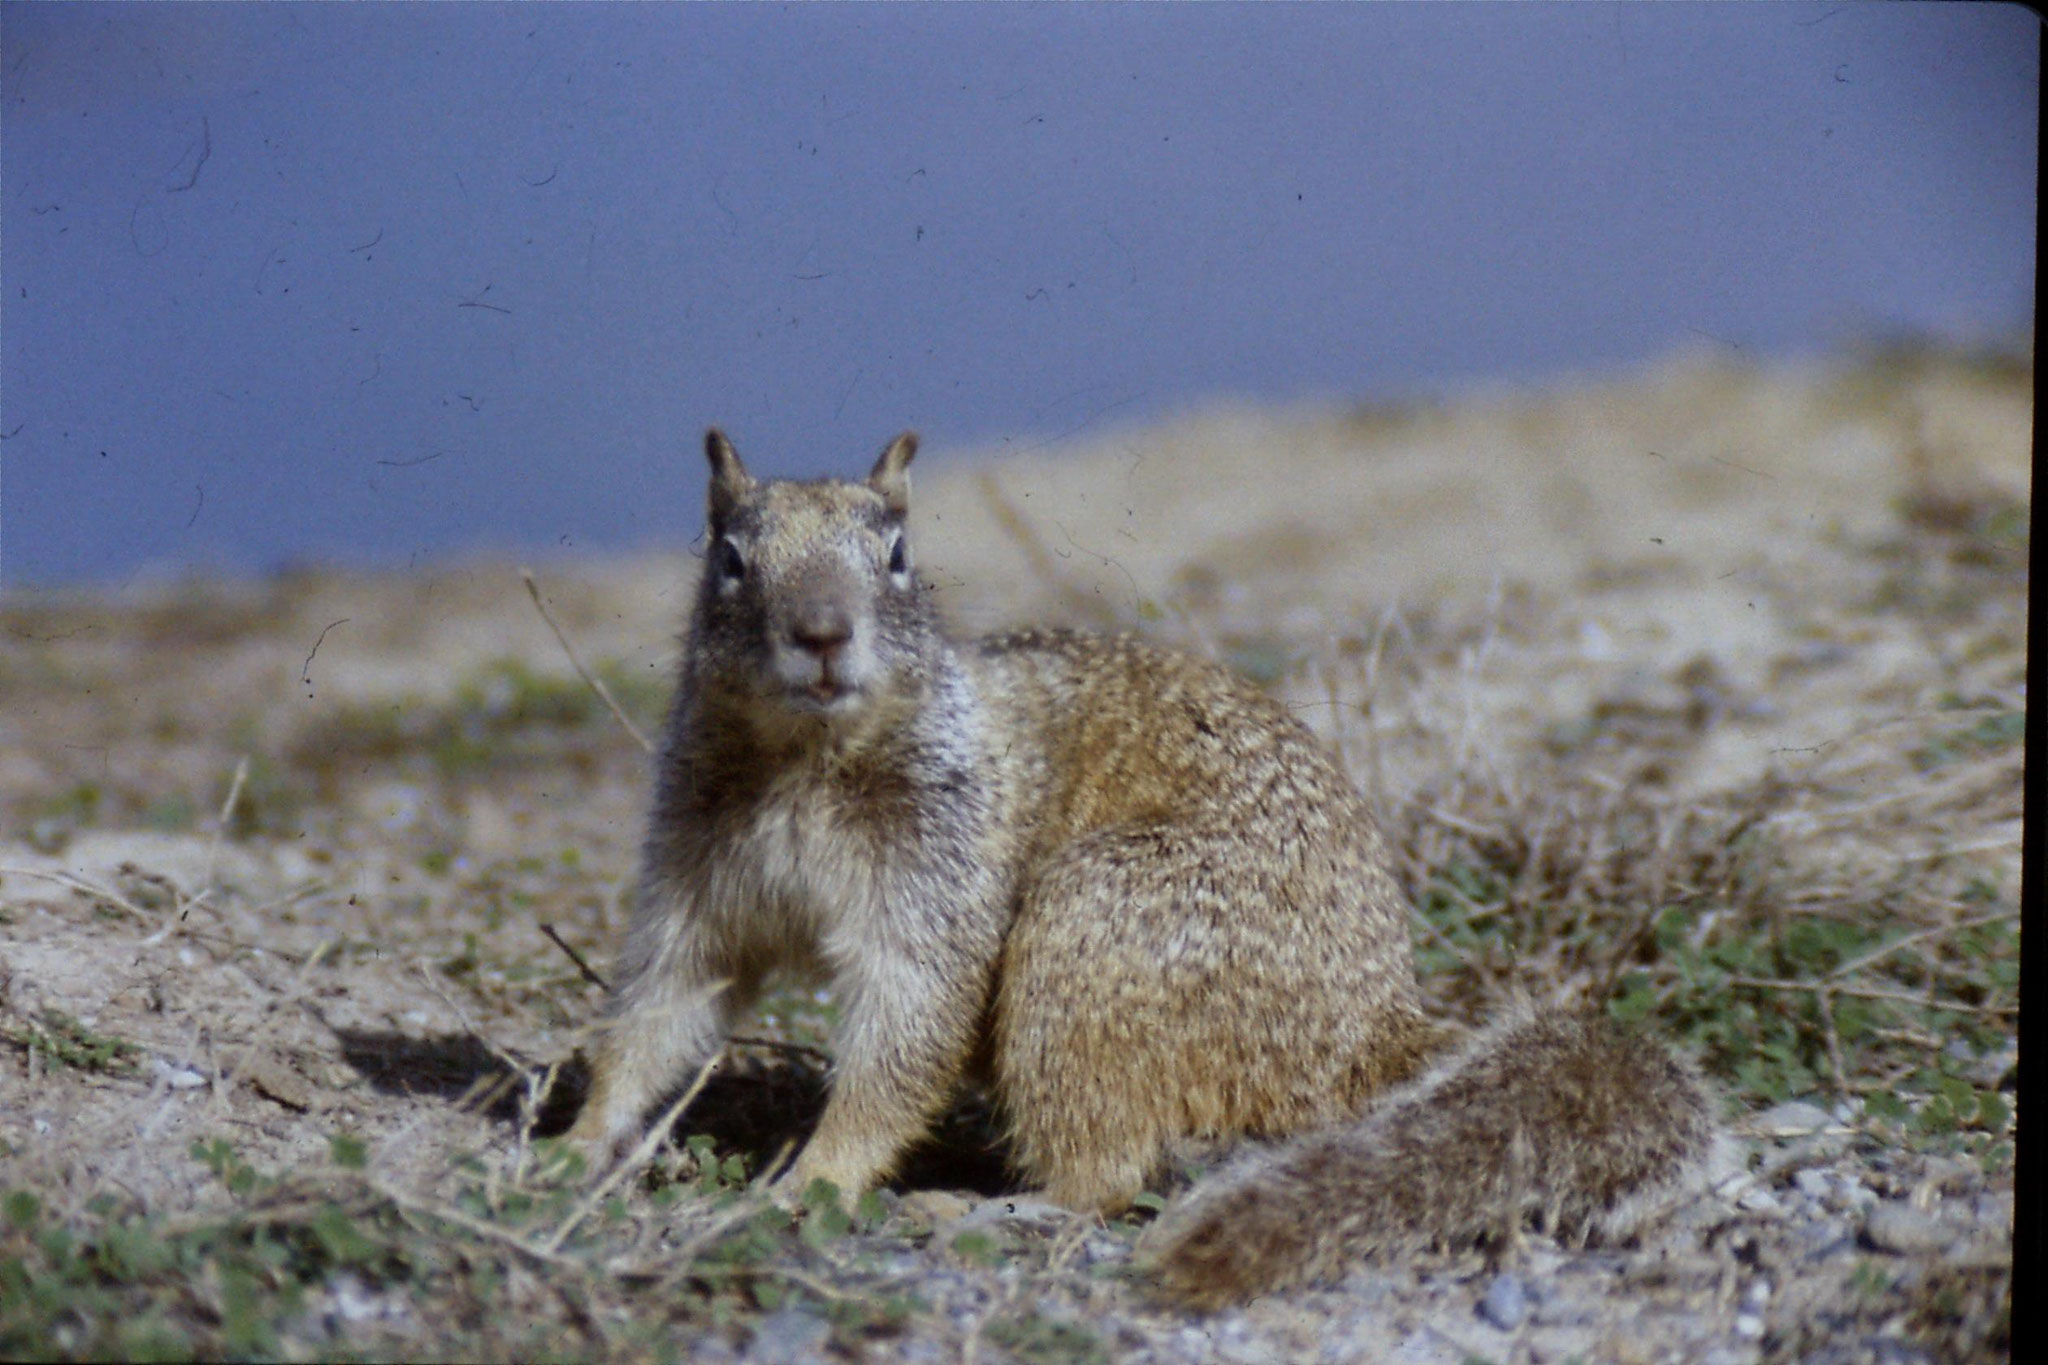 15/2/1991: 10: Sacramento NWR, Beechy Ground Squirrel